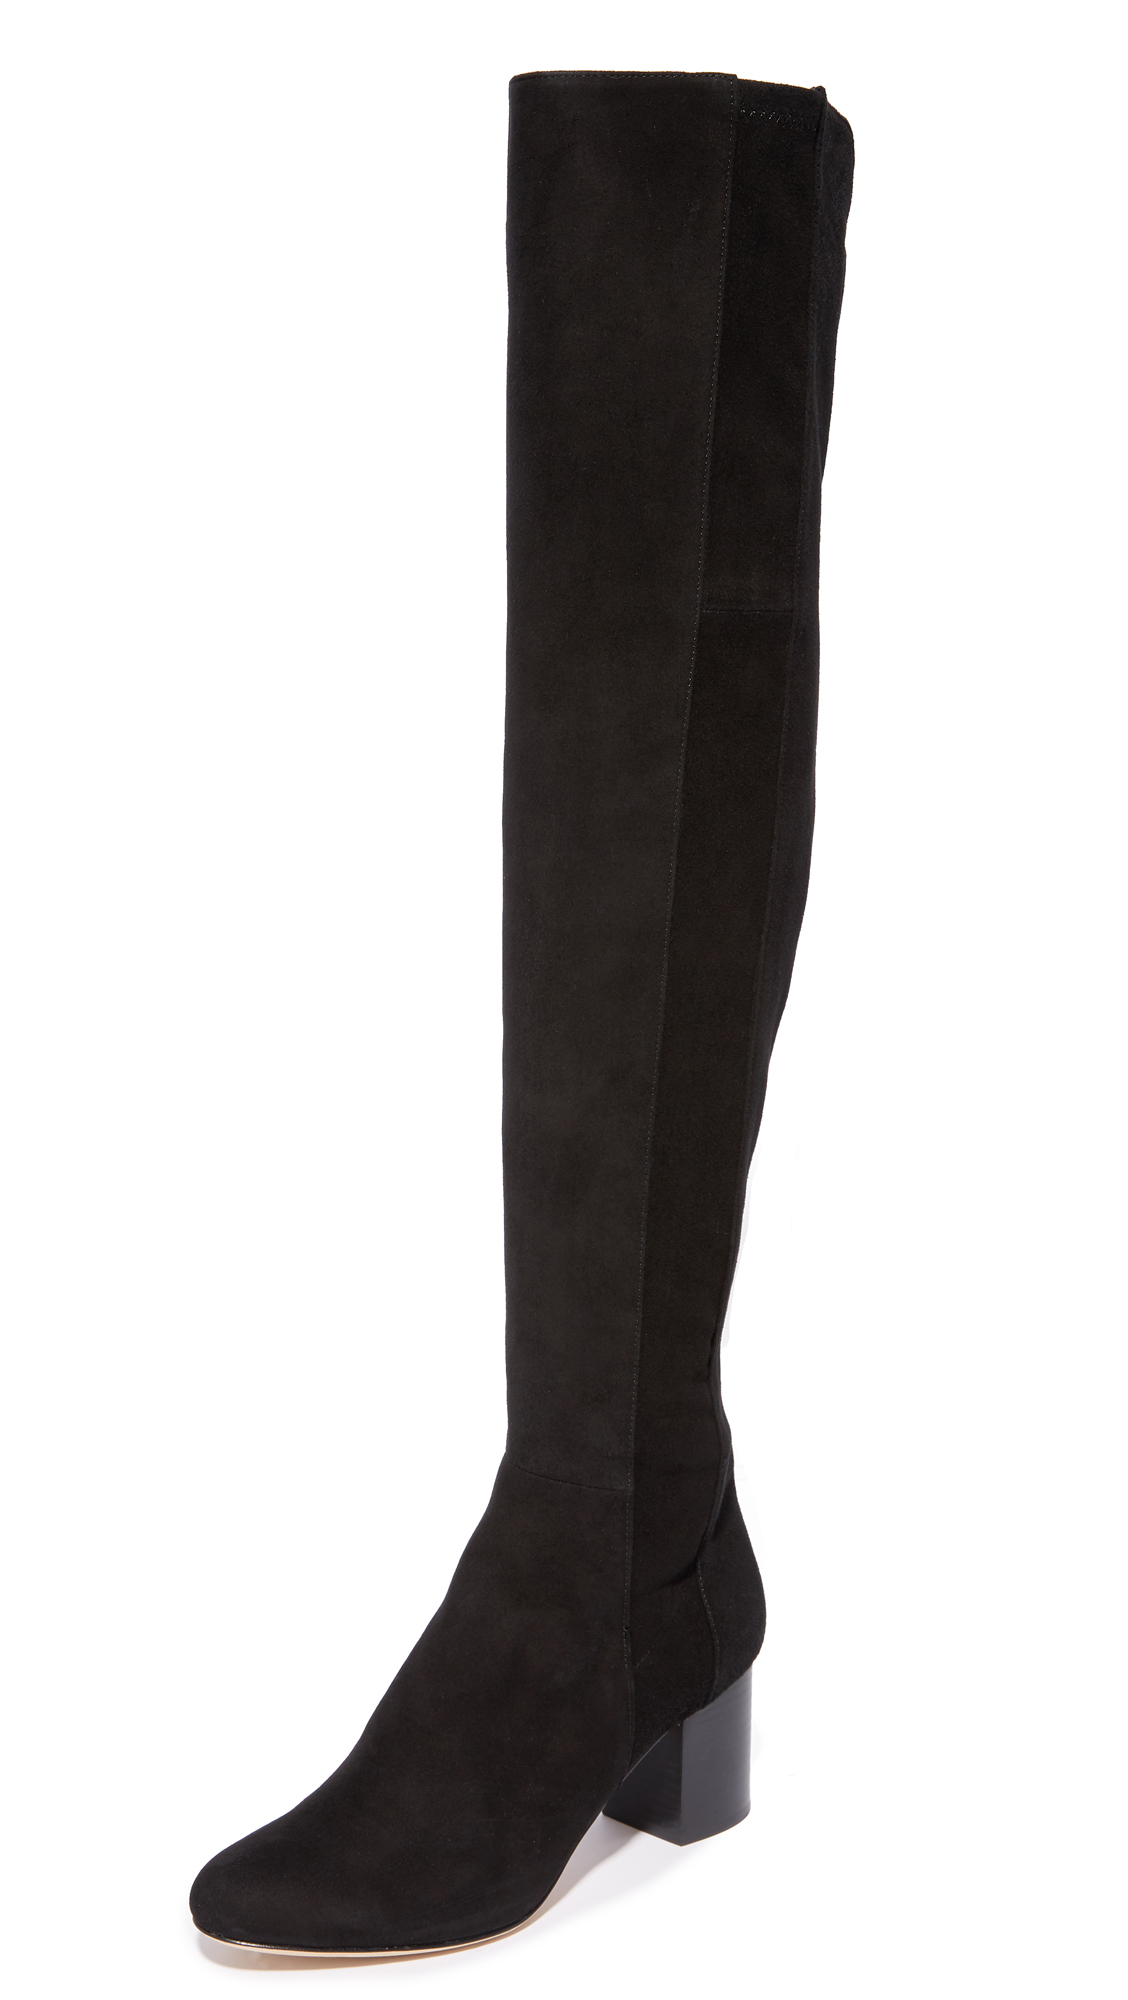 Diane von Furstenberg Luzzi Over the Knee Boots - Black